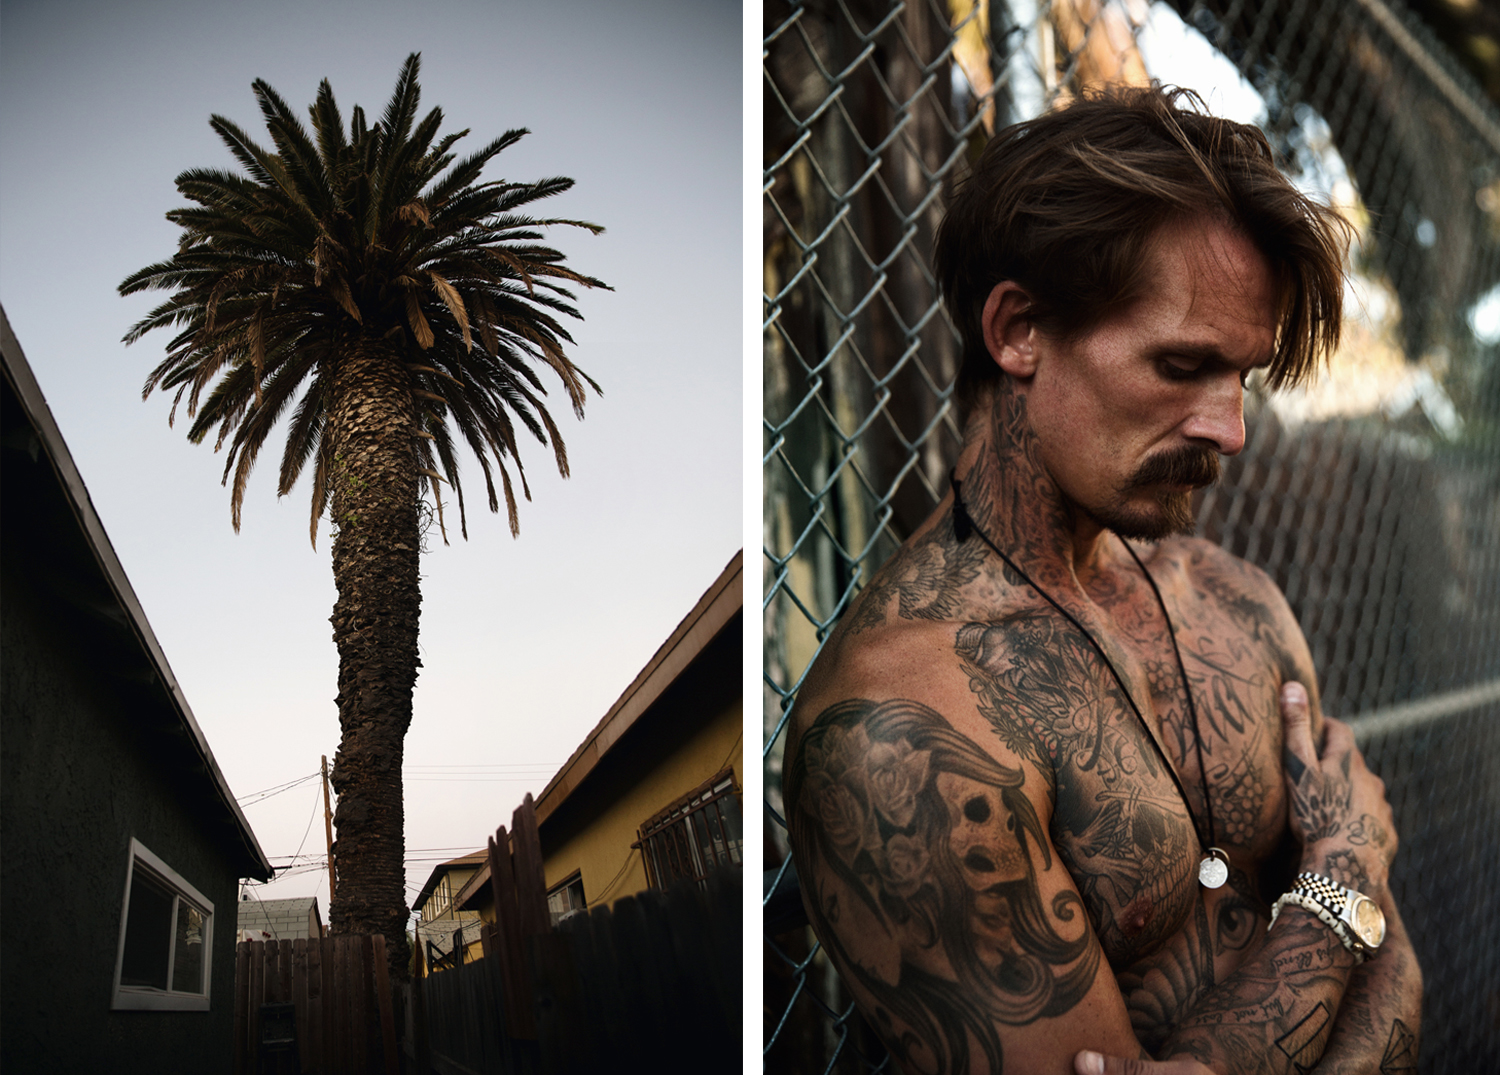 a picture of a palm tree next to a picture of a tattooed guy leaning agains a fence